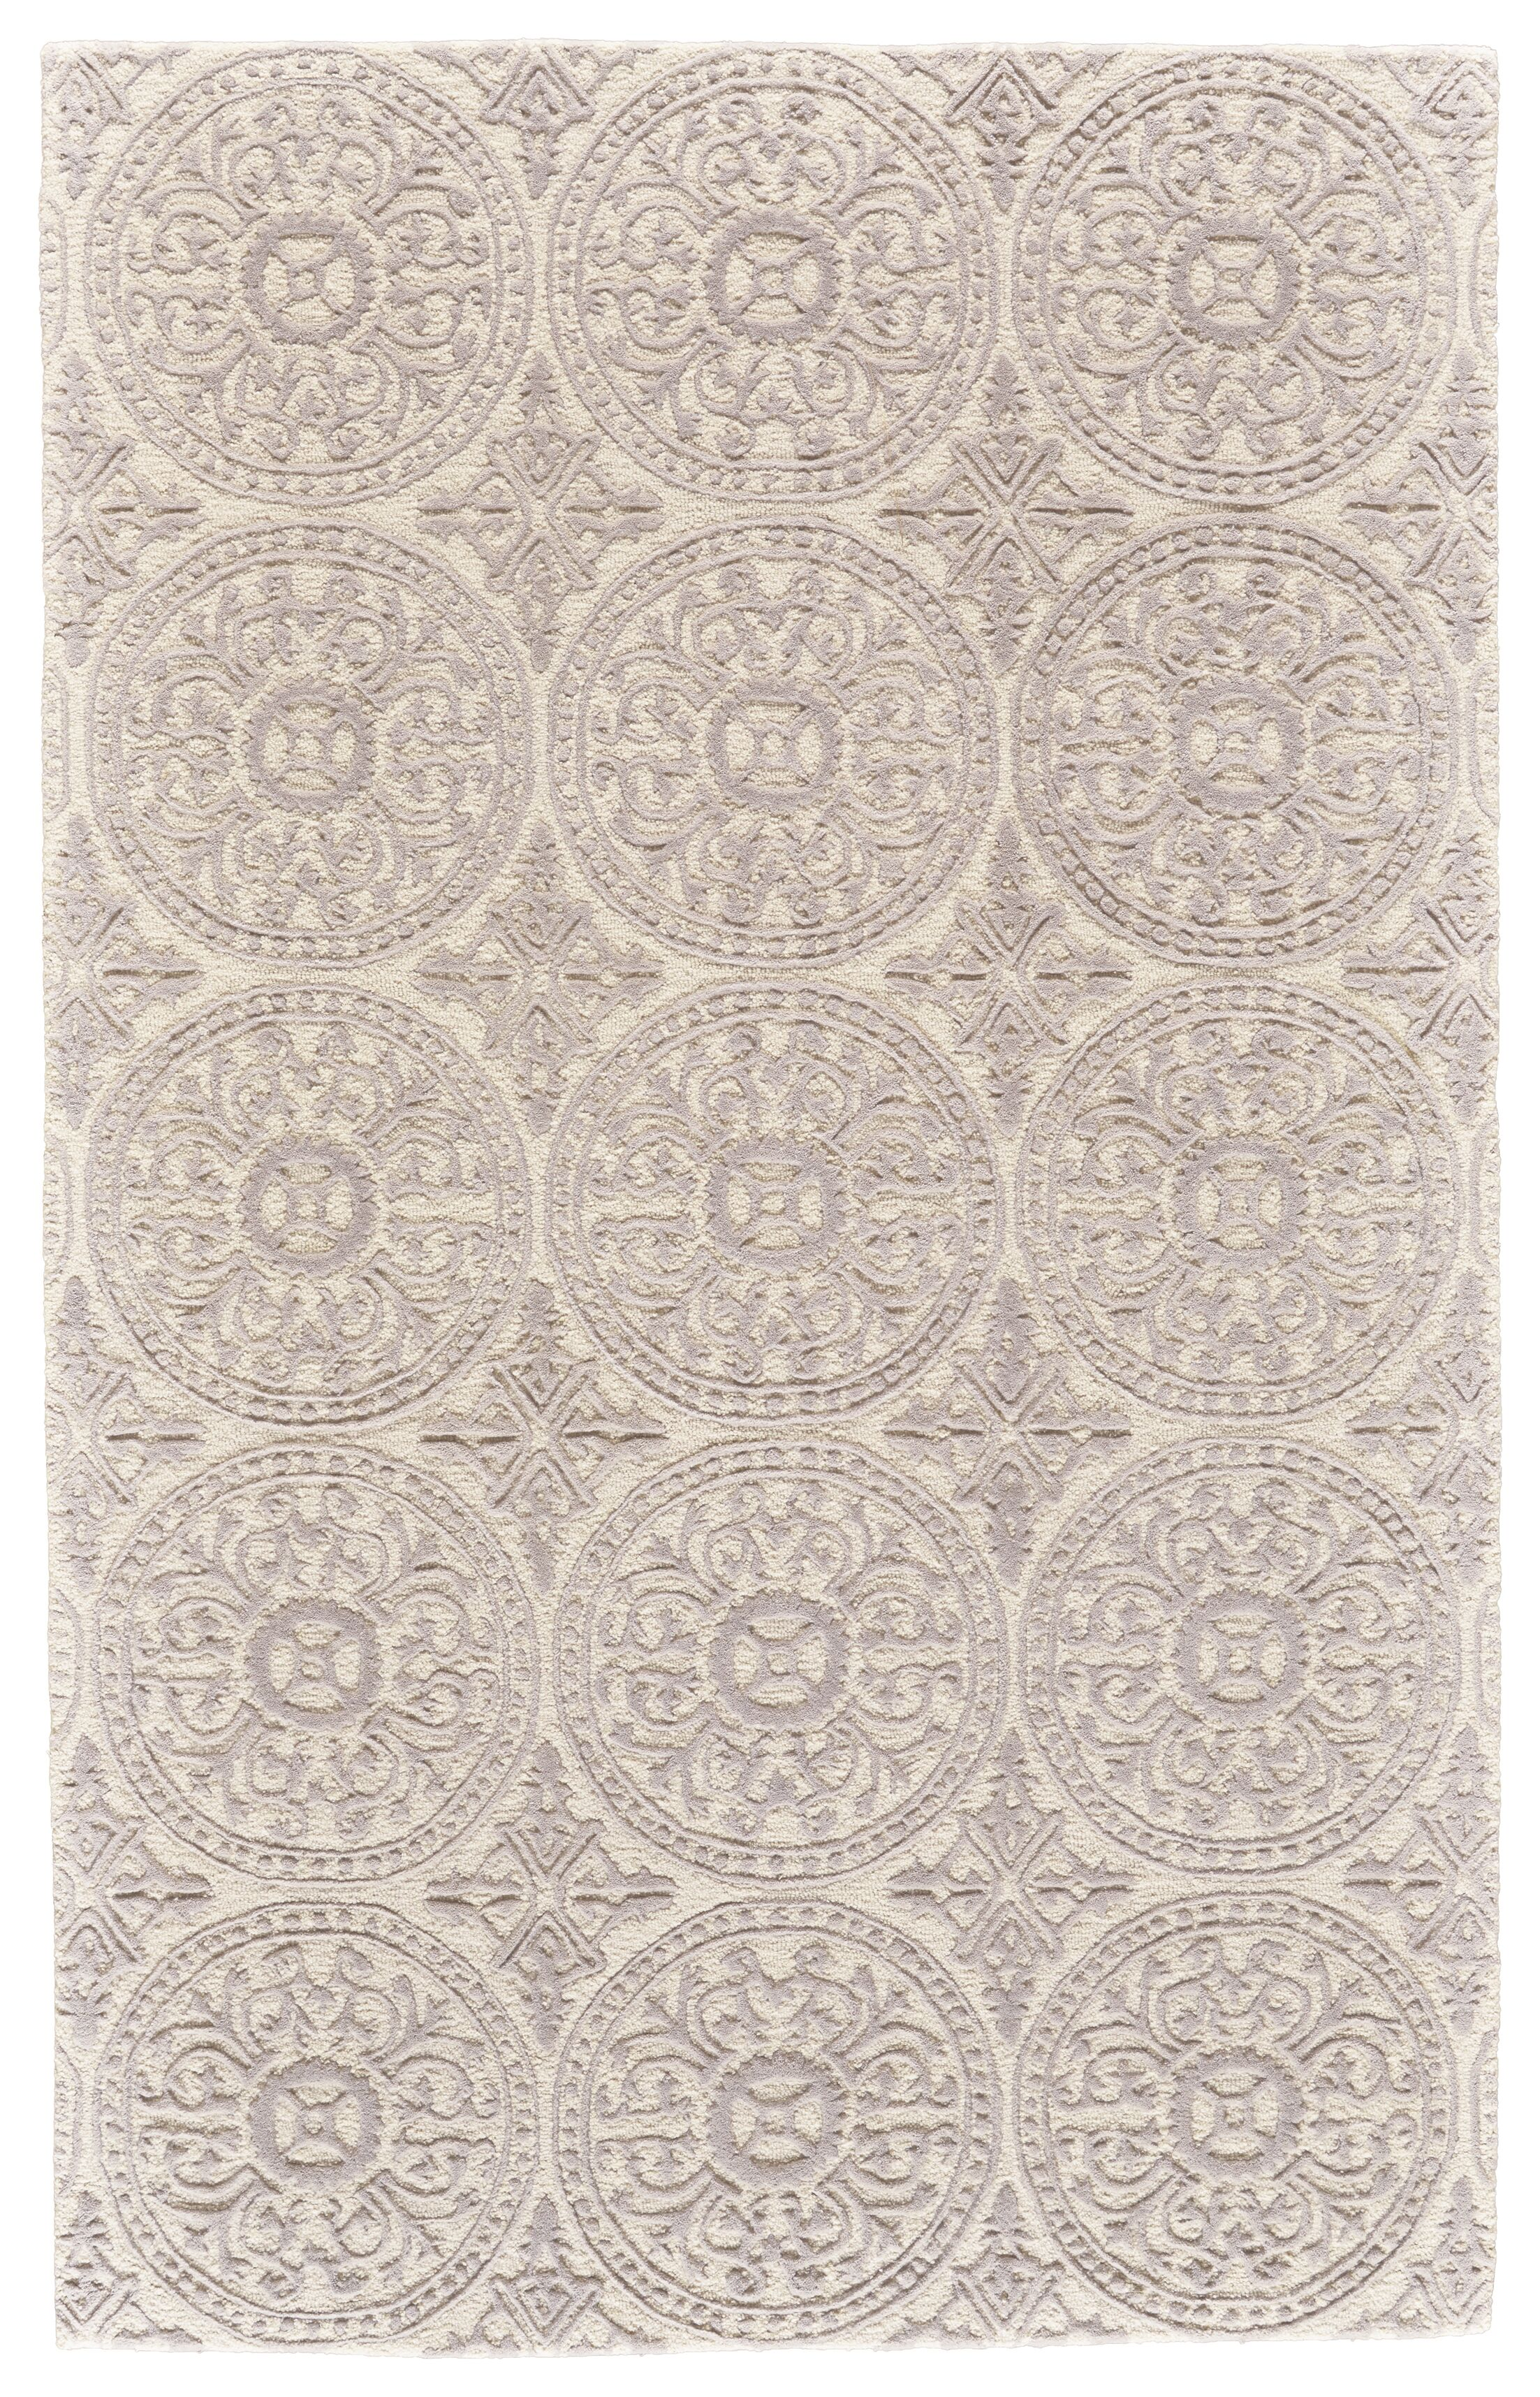 Griego Hand-Tufted Wool Ivory/Light Gray Area Rug Rug Size: Rectangle 3'6